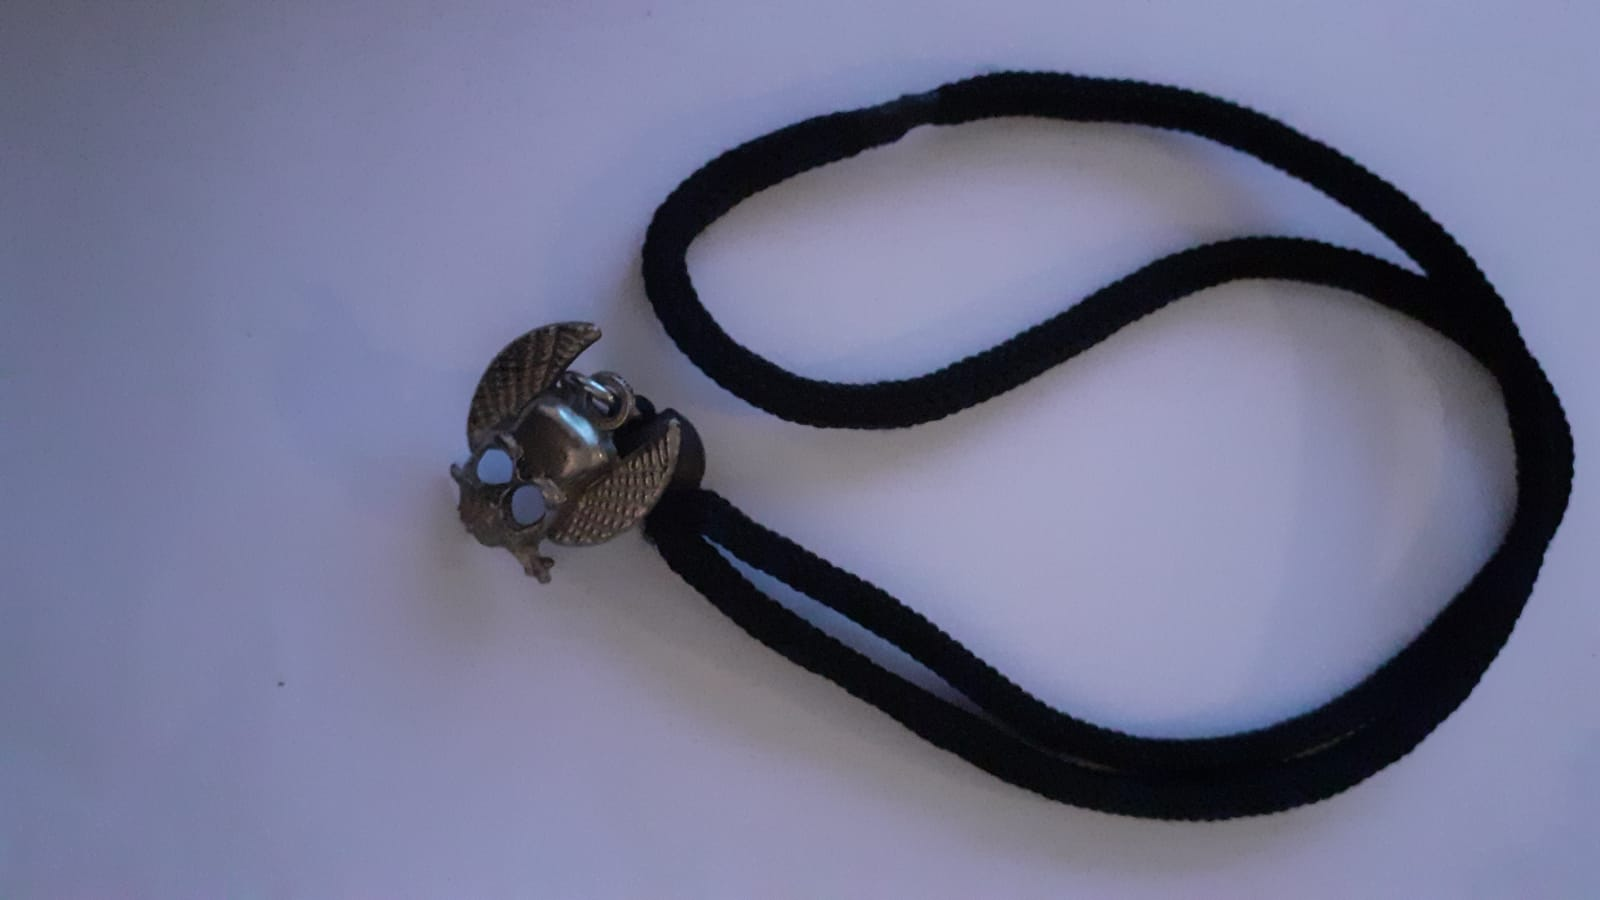 Detailed Skull Necklace with Tightening Knot